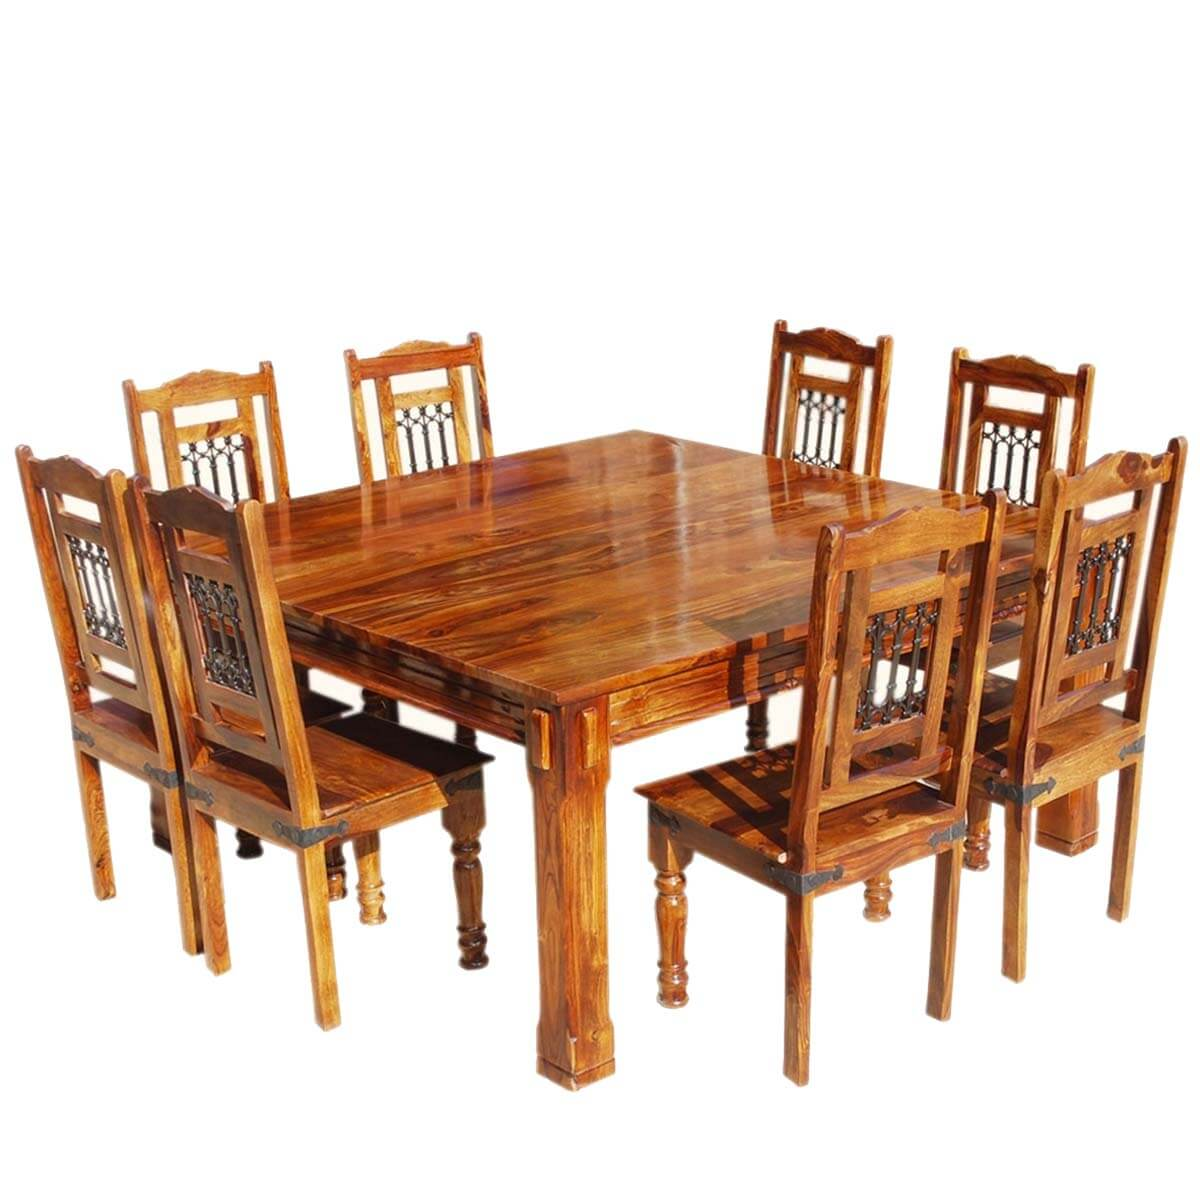 Solid Wood Table And Chairs: Transitional Solid Wood Rustic Square Dining Table Chairs Set